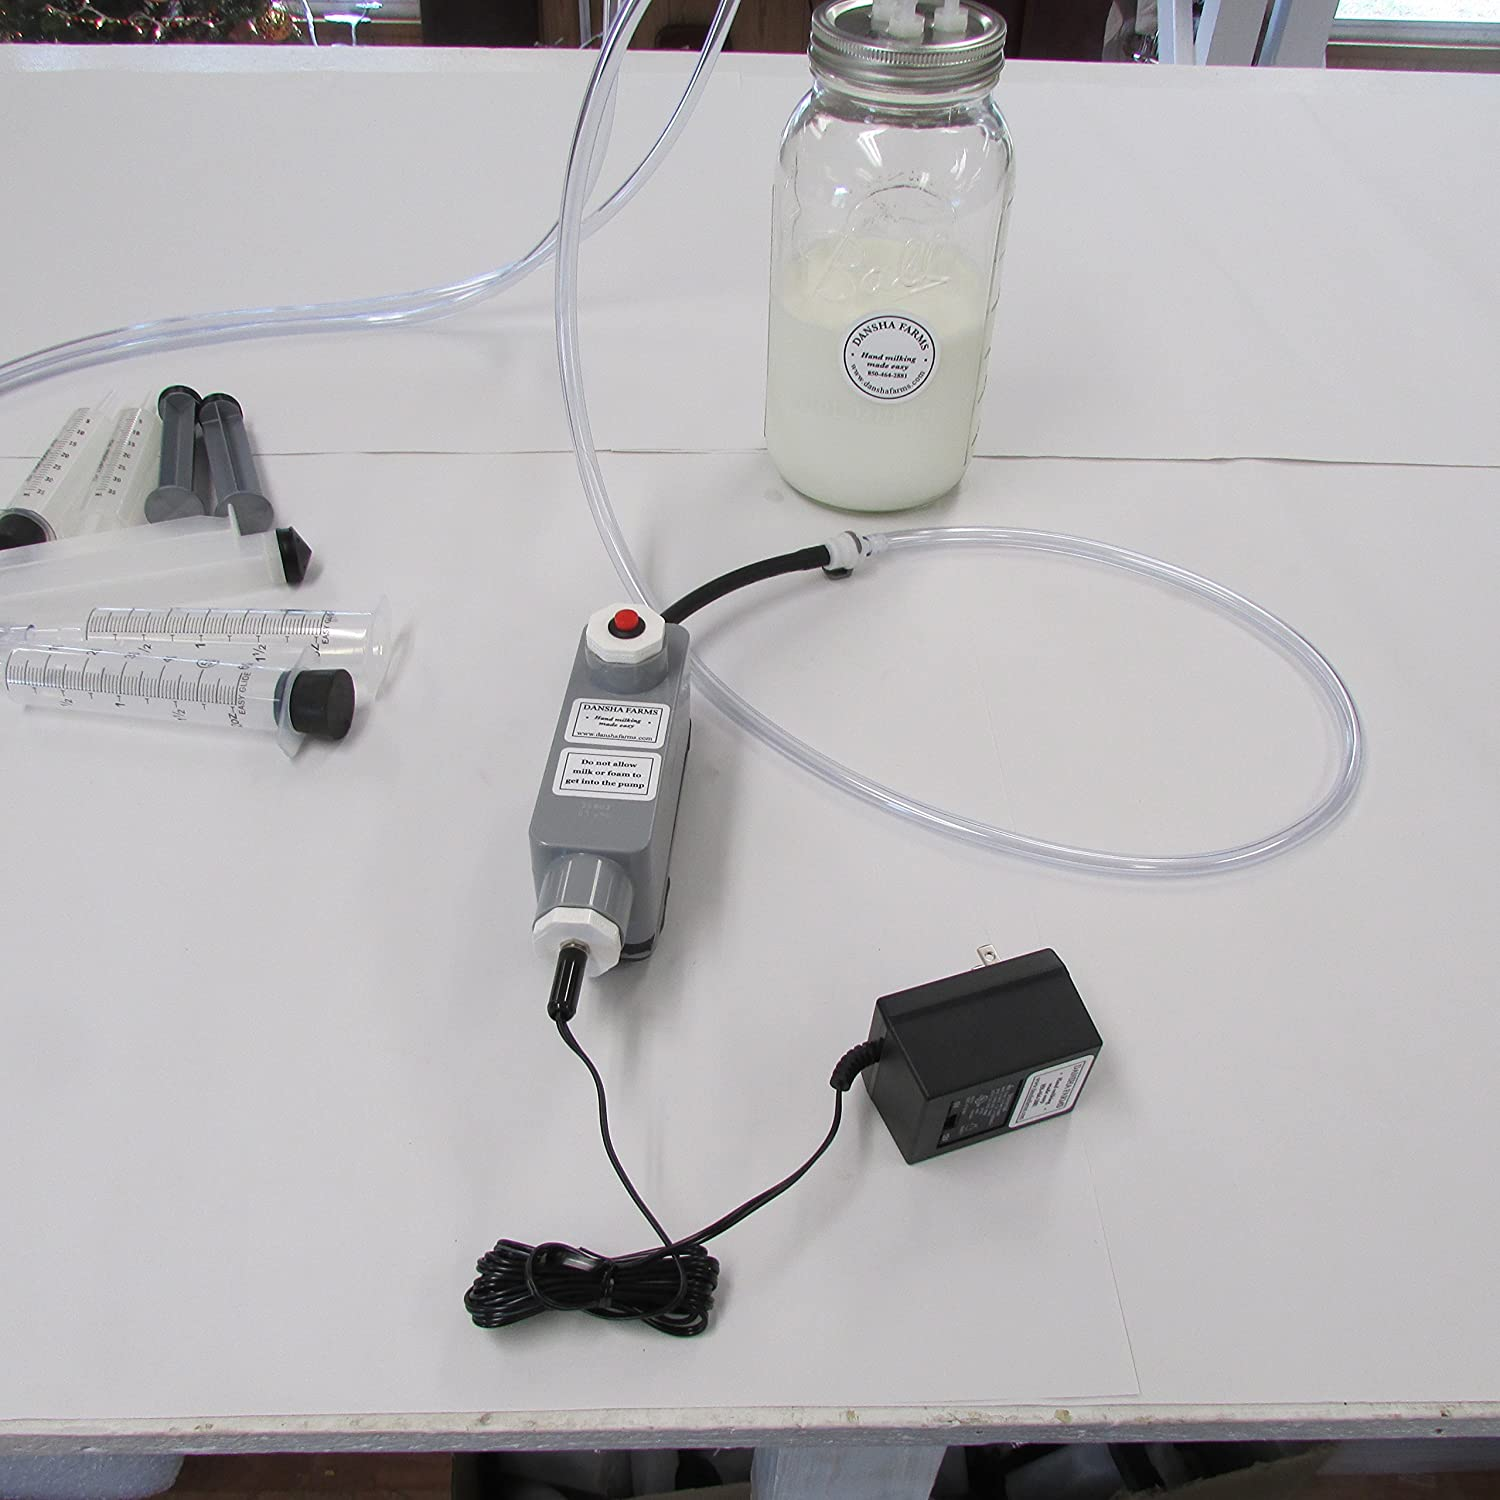 Milk Machine Vacuum-Manual Pulse 1/2 Gallon 2 Teat Goat Sheep Cow 12 Volt with Power Supply Patent US9,635,830 B2